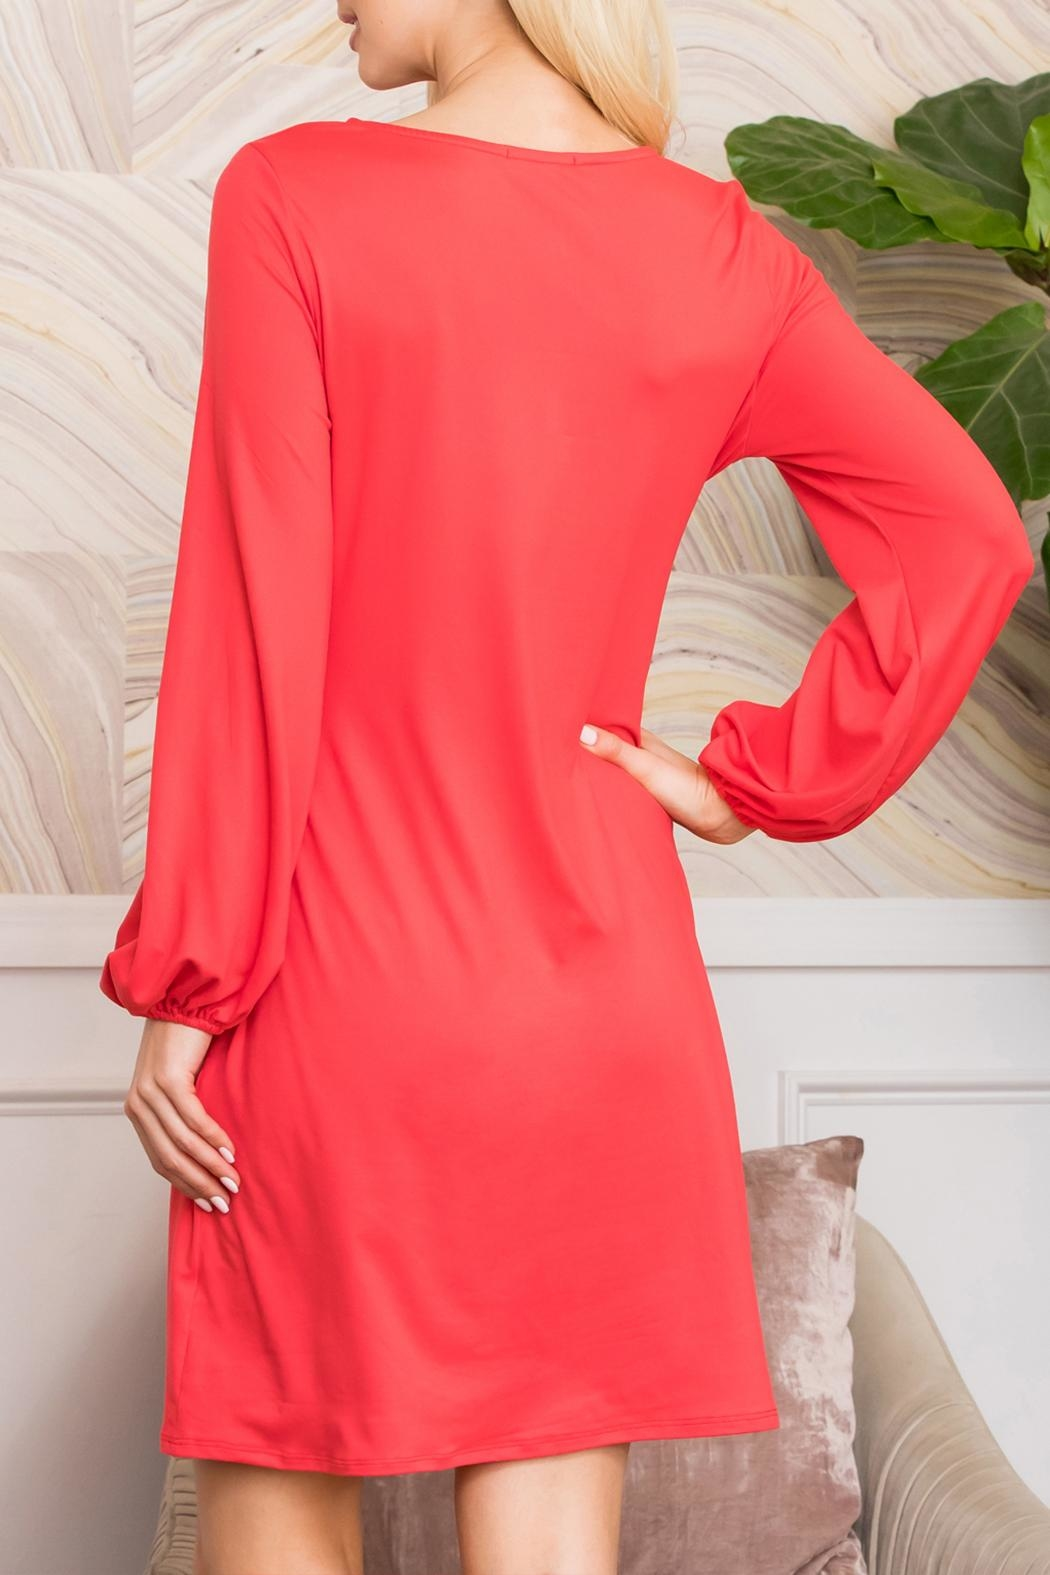 Riah Fashion Spring Puff Sleeve Tie Dress - Back Cropped Image